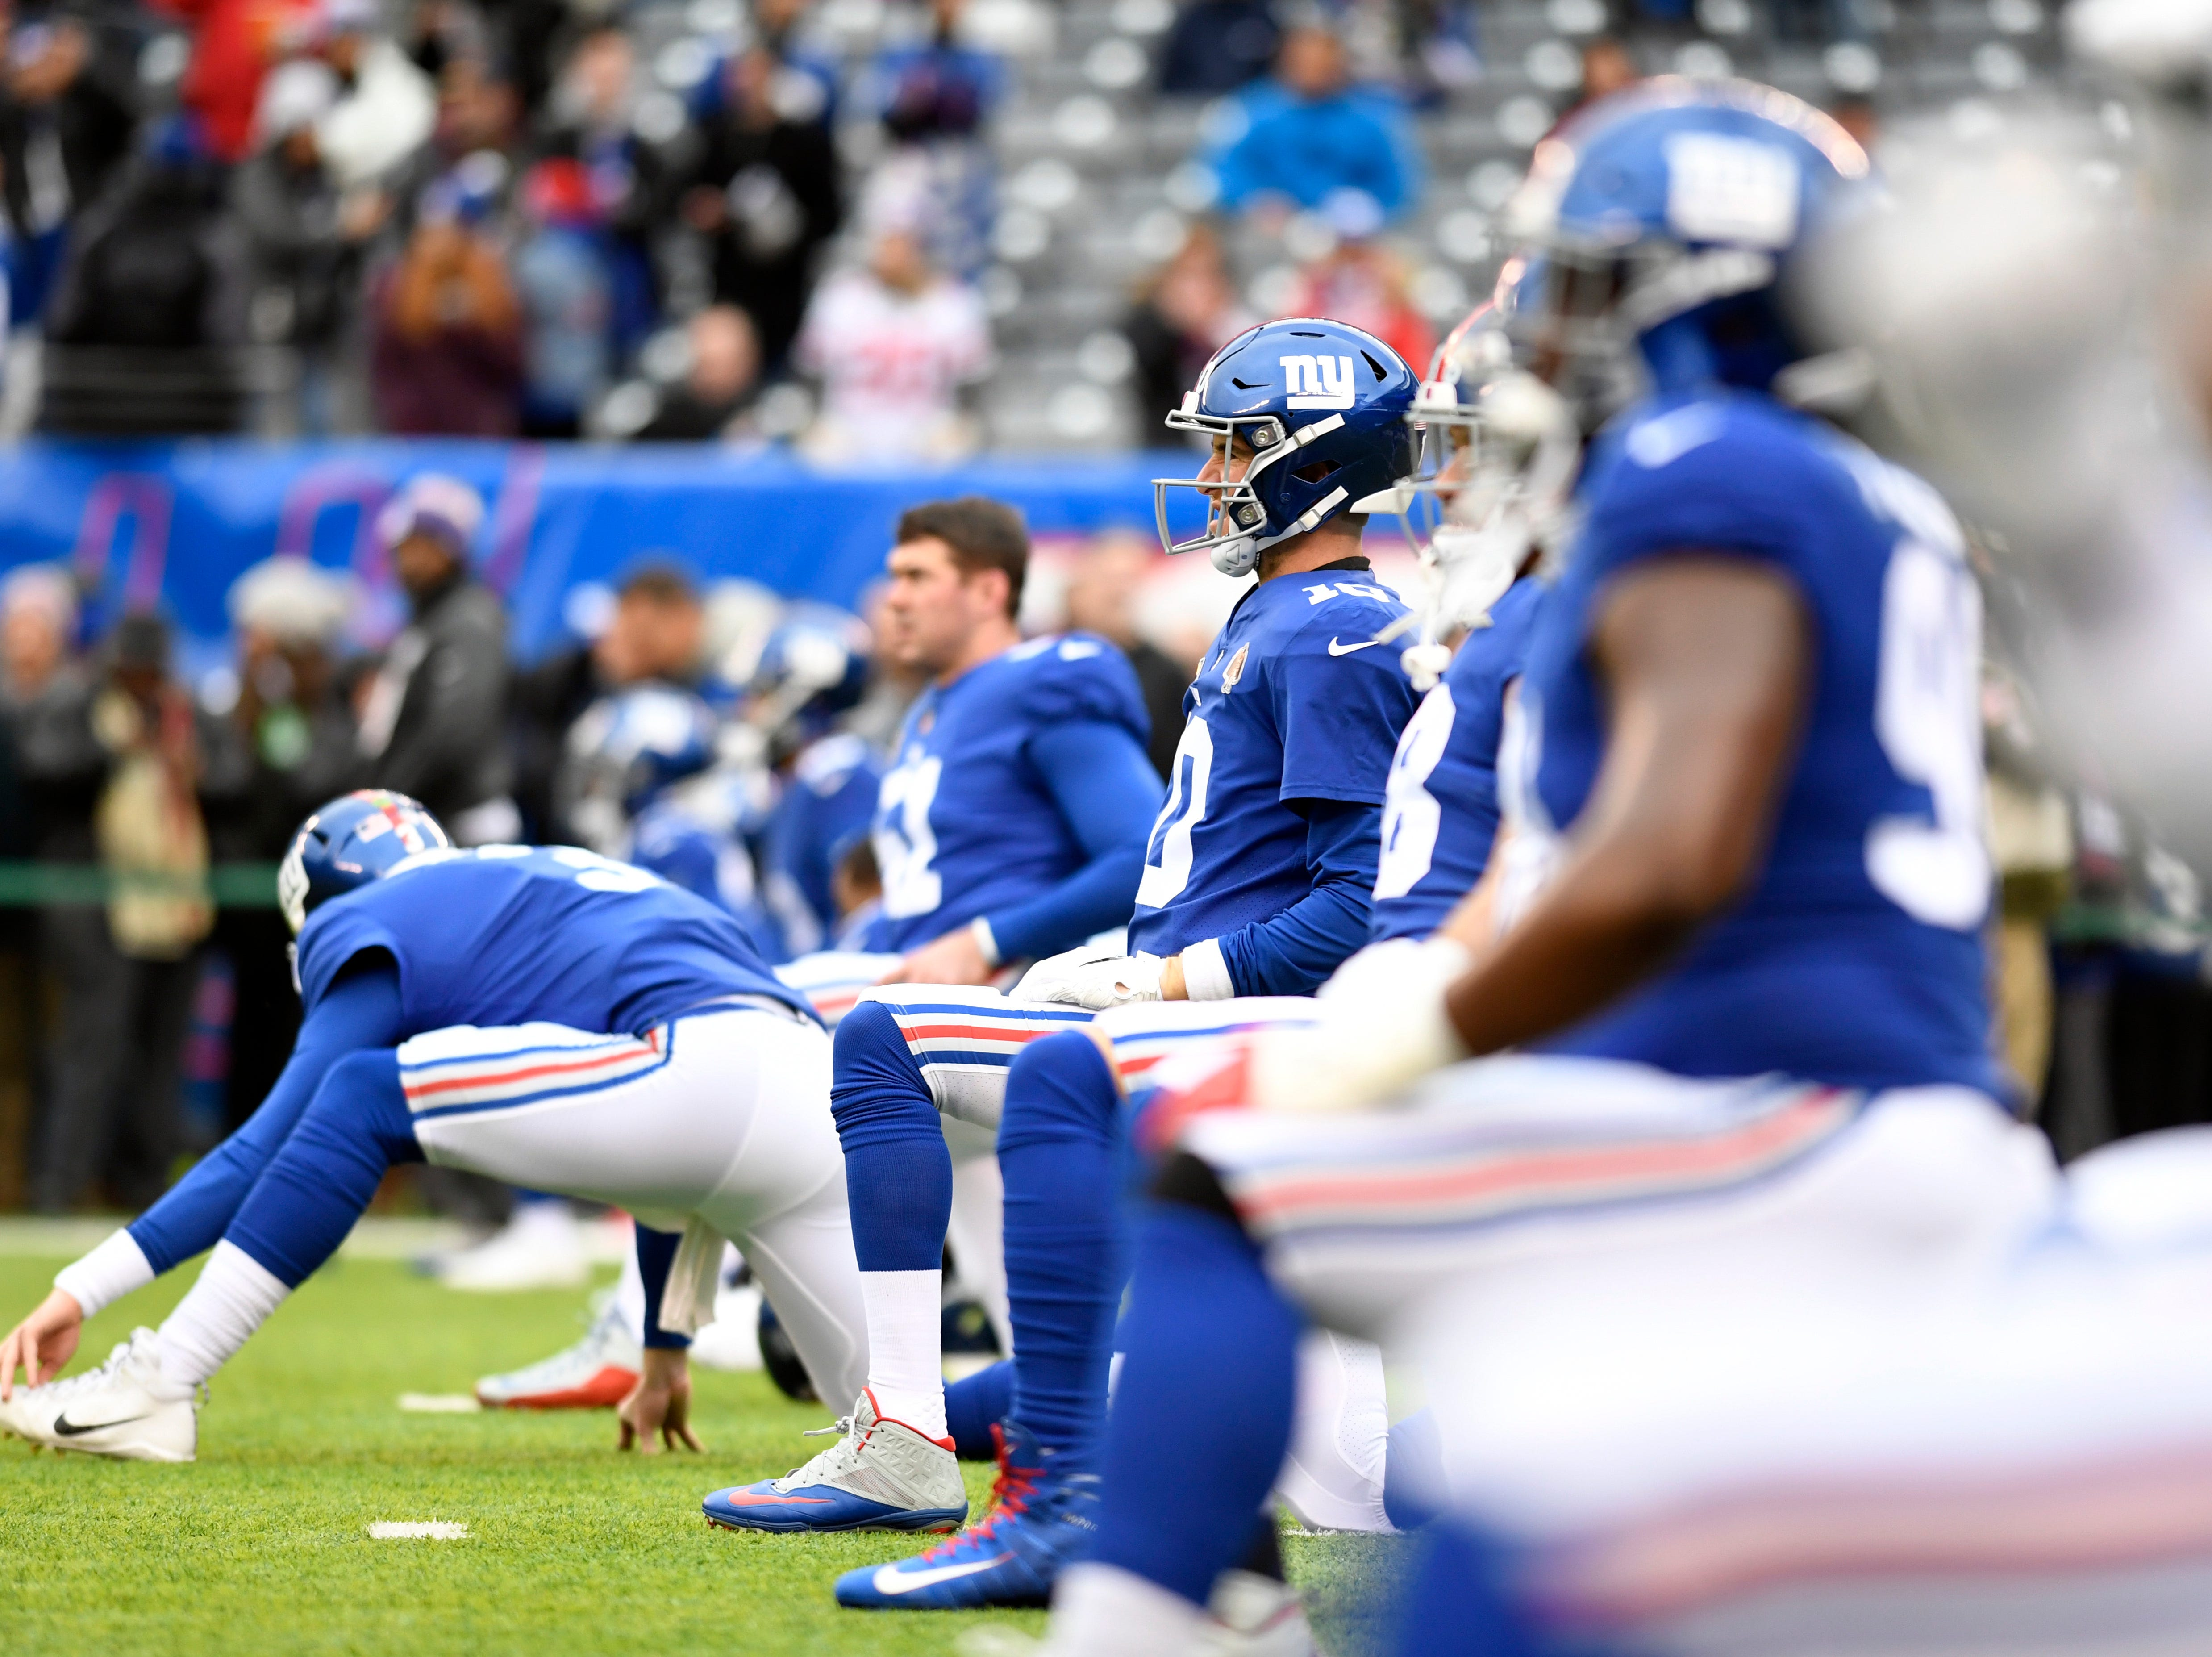 New York Giants quarterback Eli Manning and the Giants stretch before facing the Dallas Cowboys in the last regular season game on Sunday, Dec. 30, 2018, in East Rutherford.